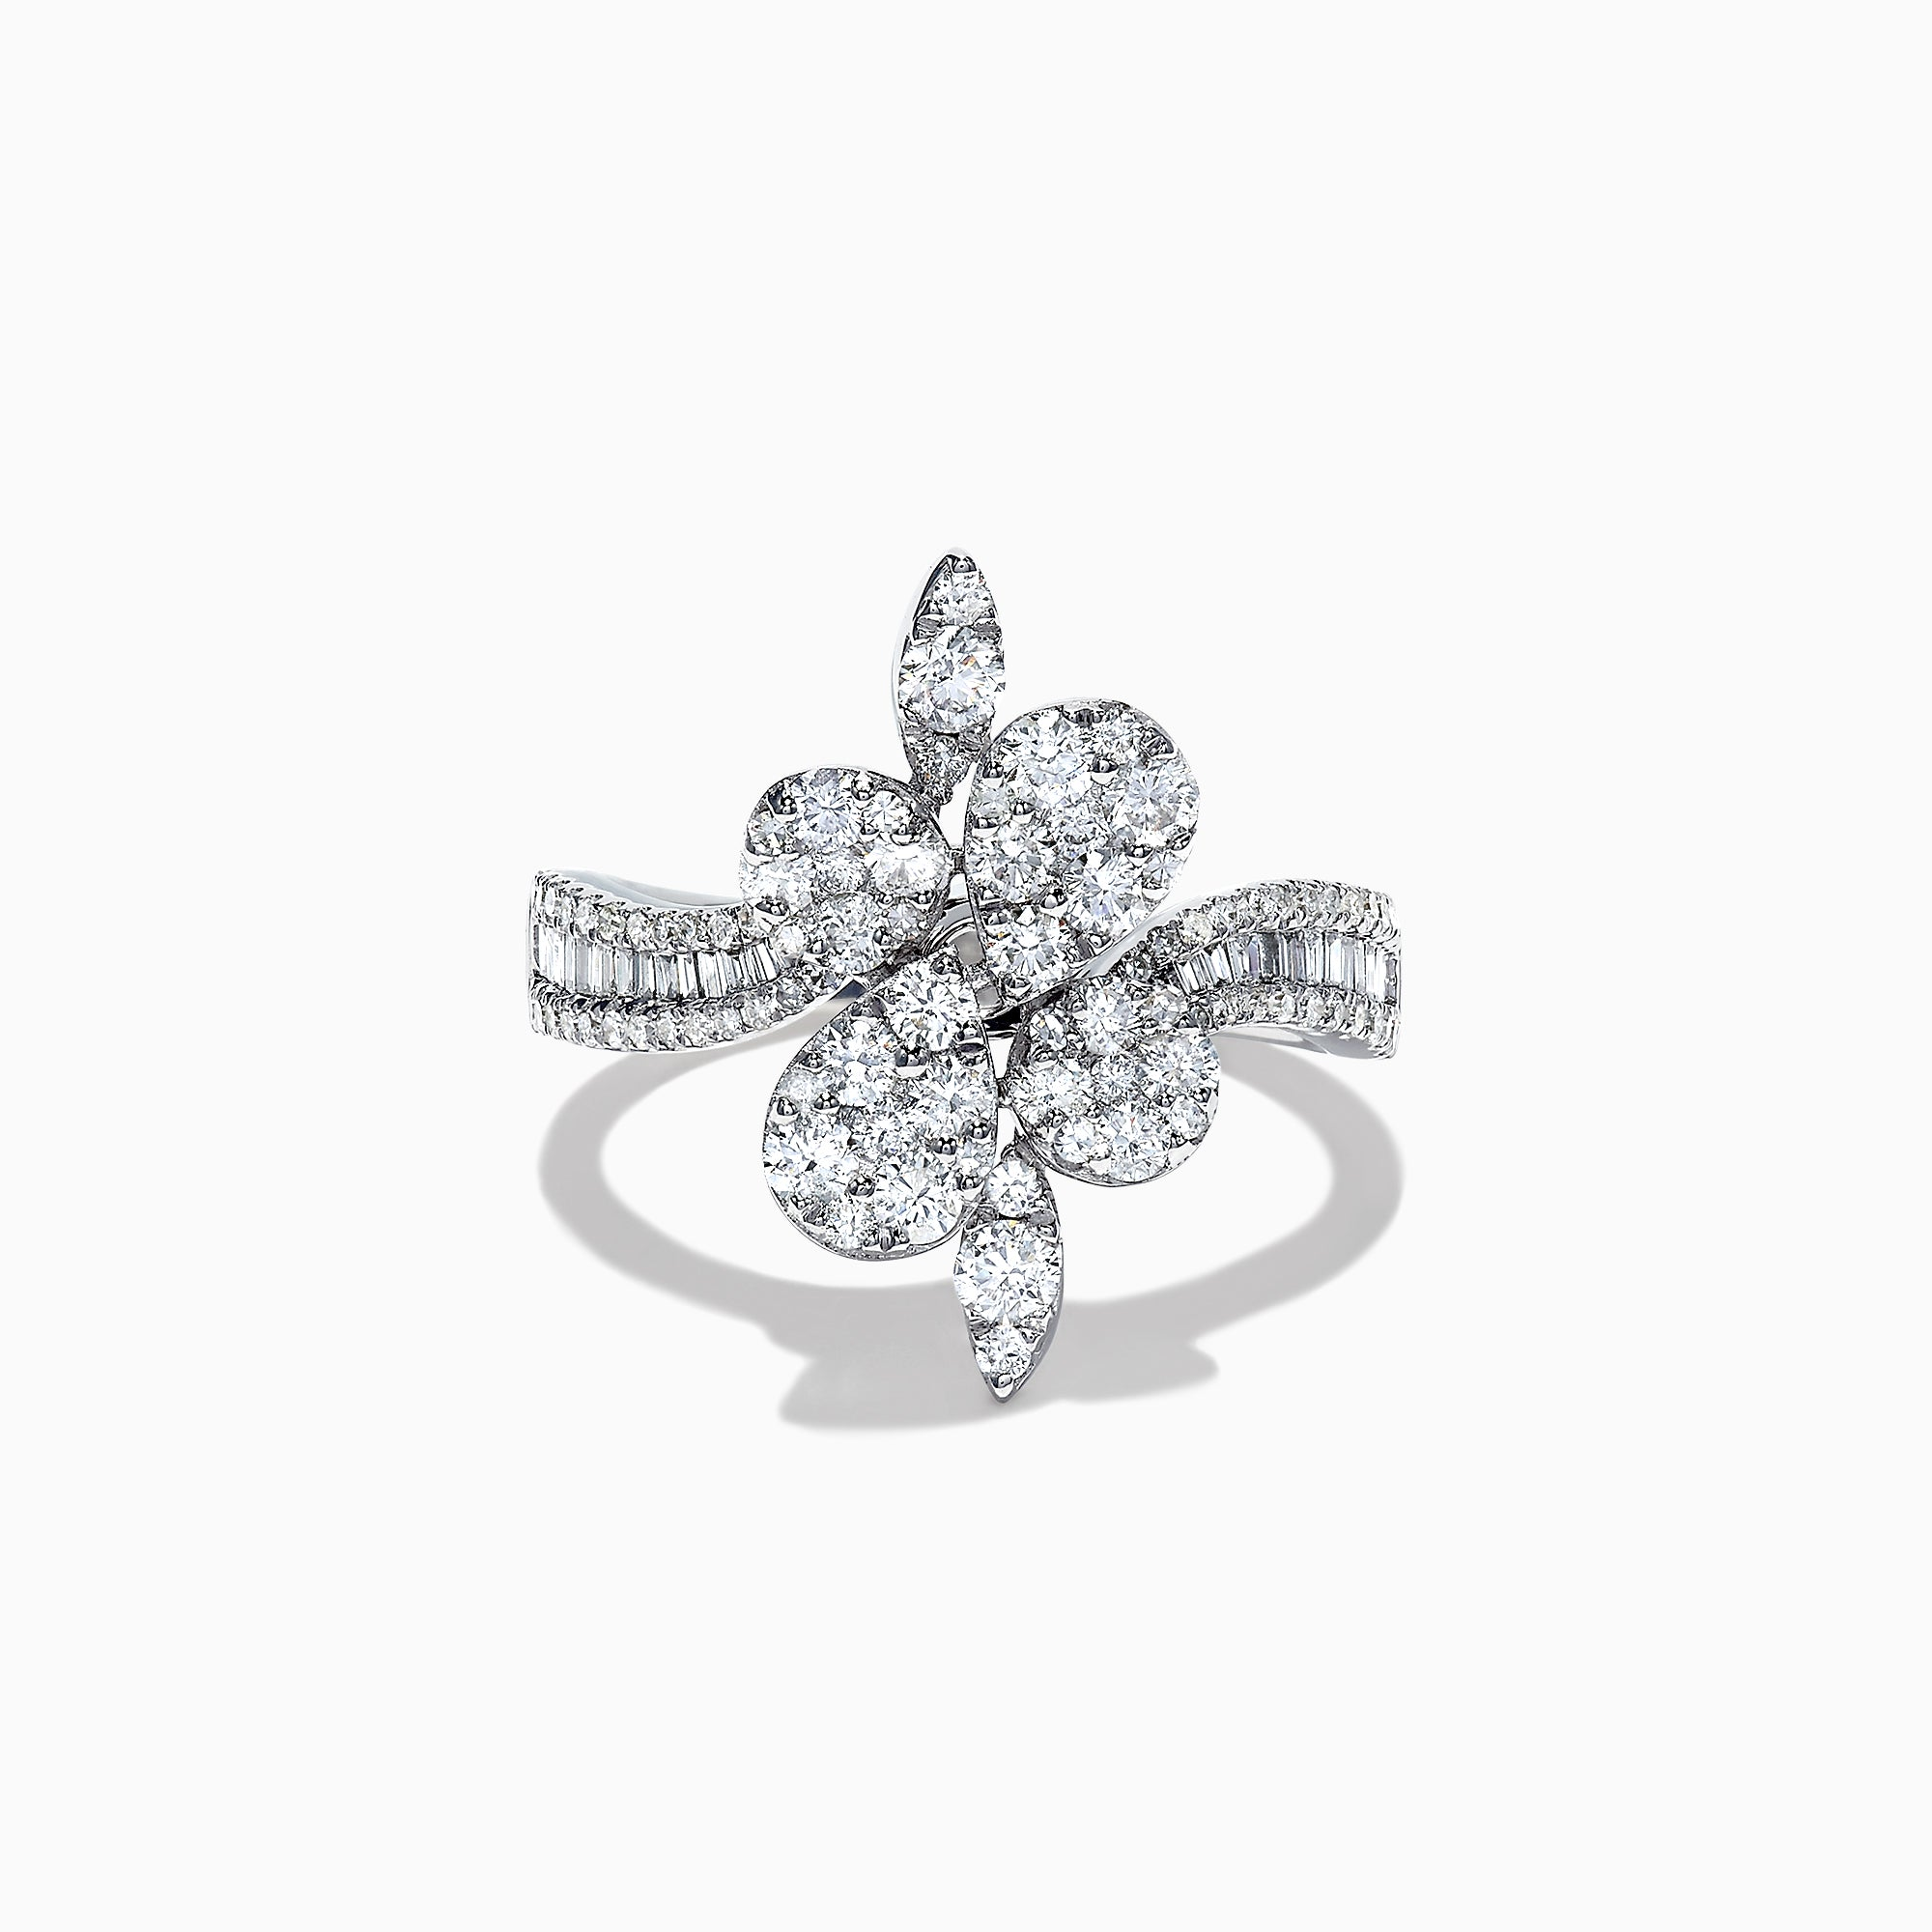 Effy Pave Classica 14K White Gold Diamond Ring, 1.27 TCW